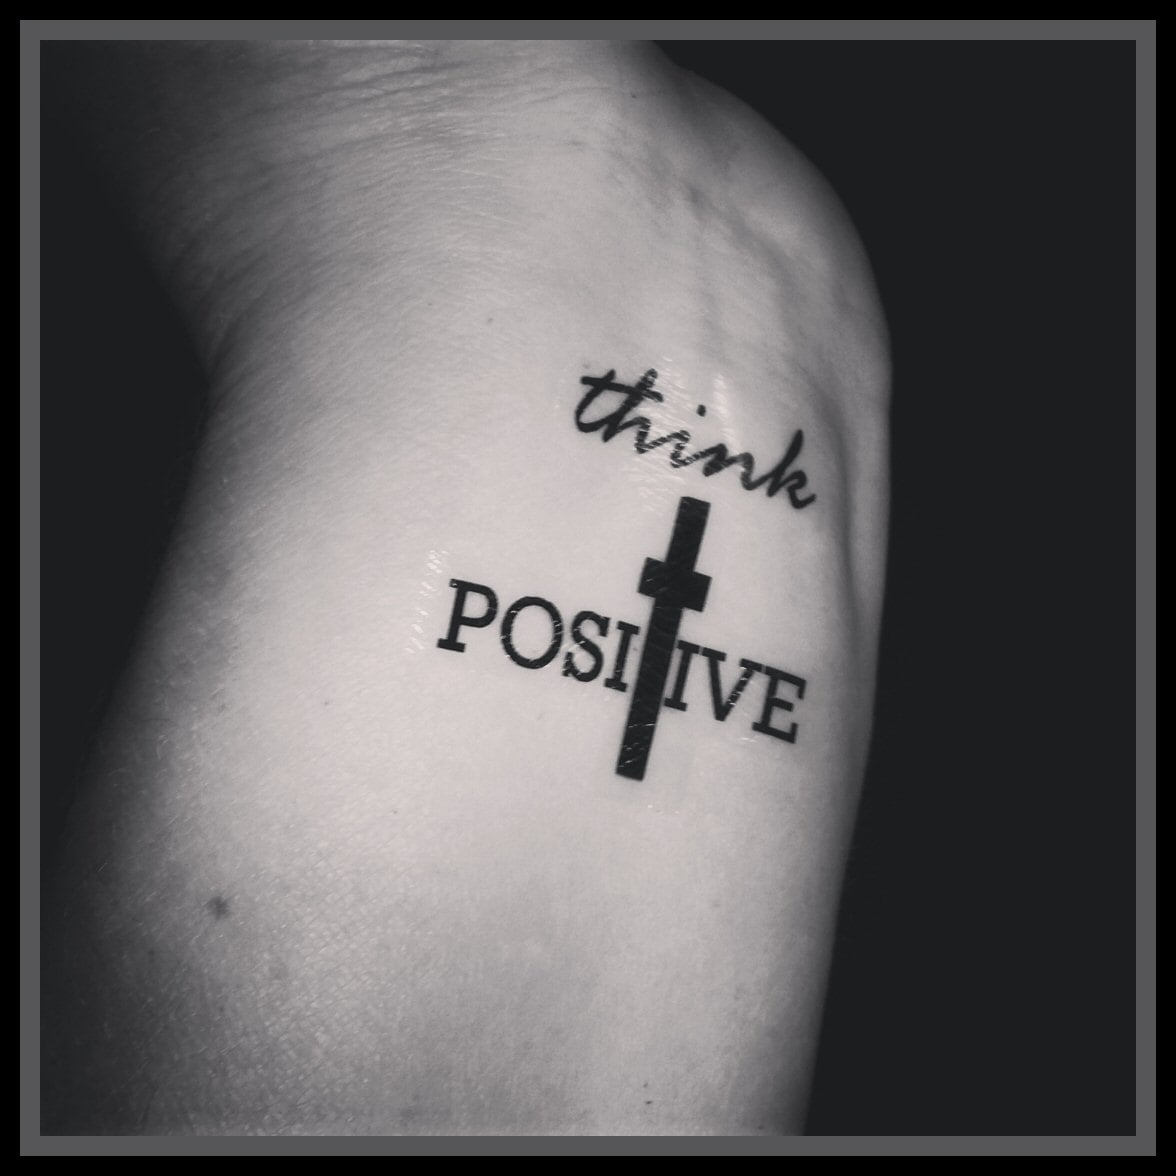 Tattoo Quotes With Cross: Quote TattooTemporary Tattoos Set Of 2 Think Positive Cross